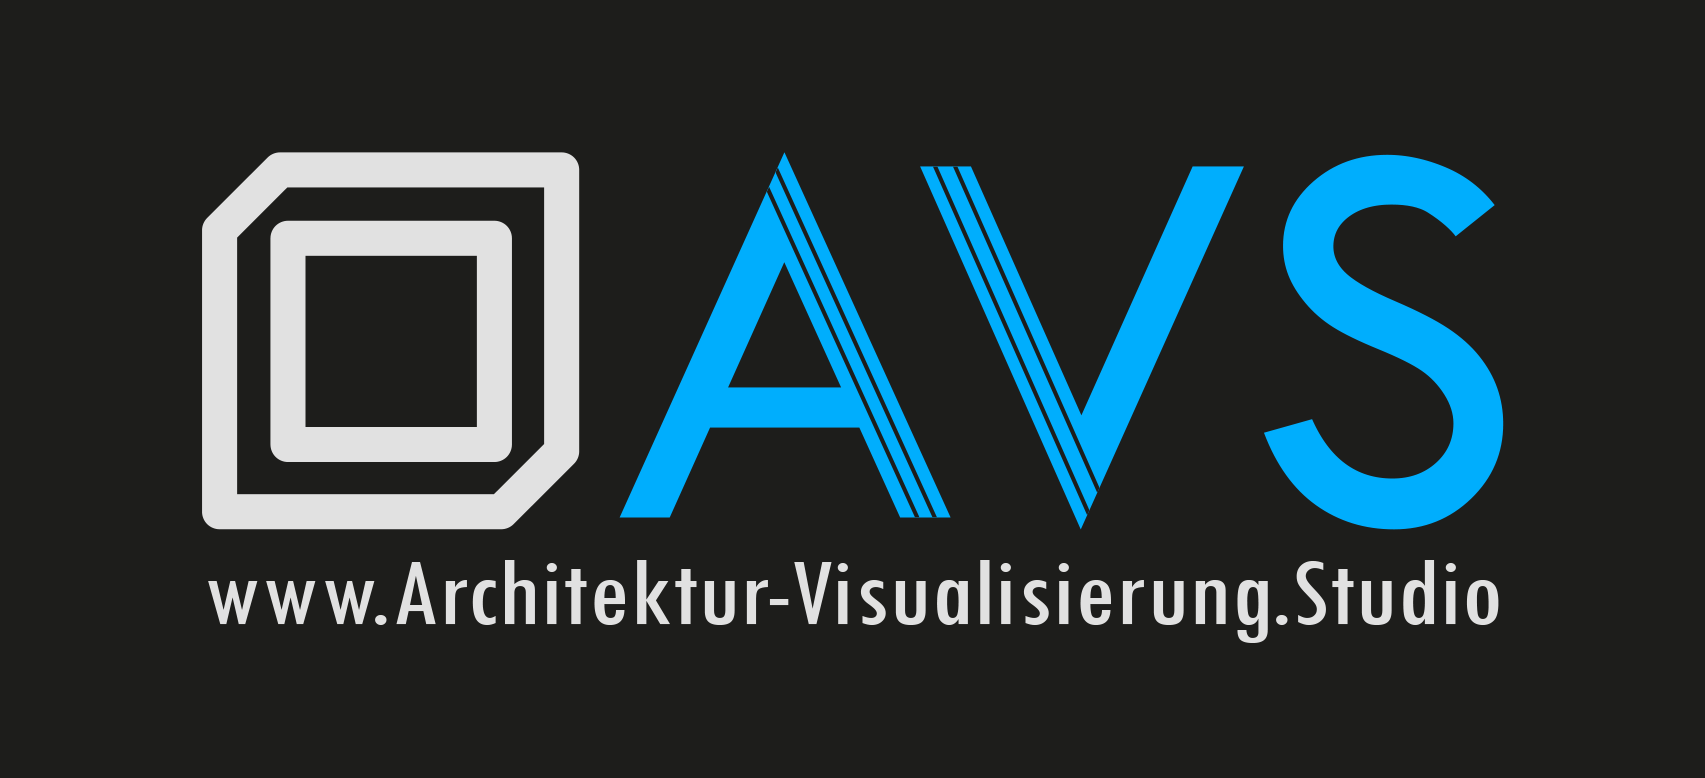 AVS | Architektur-Visualisierung.Studio